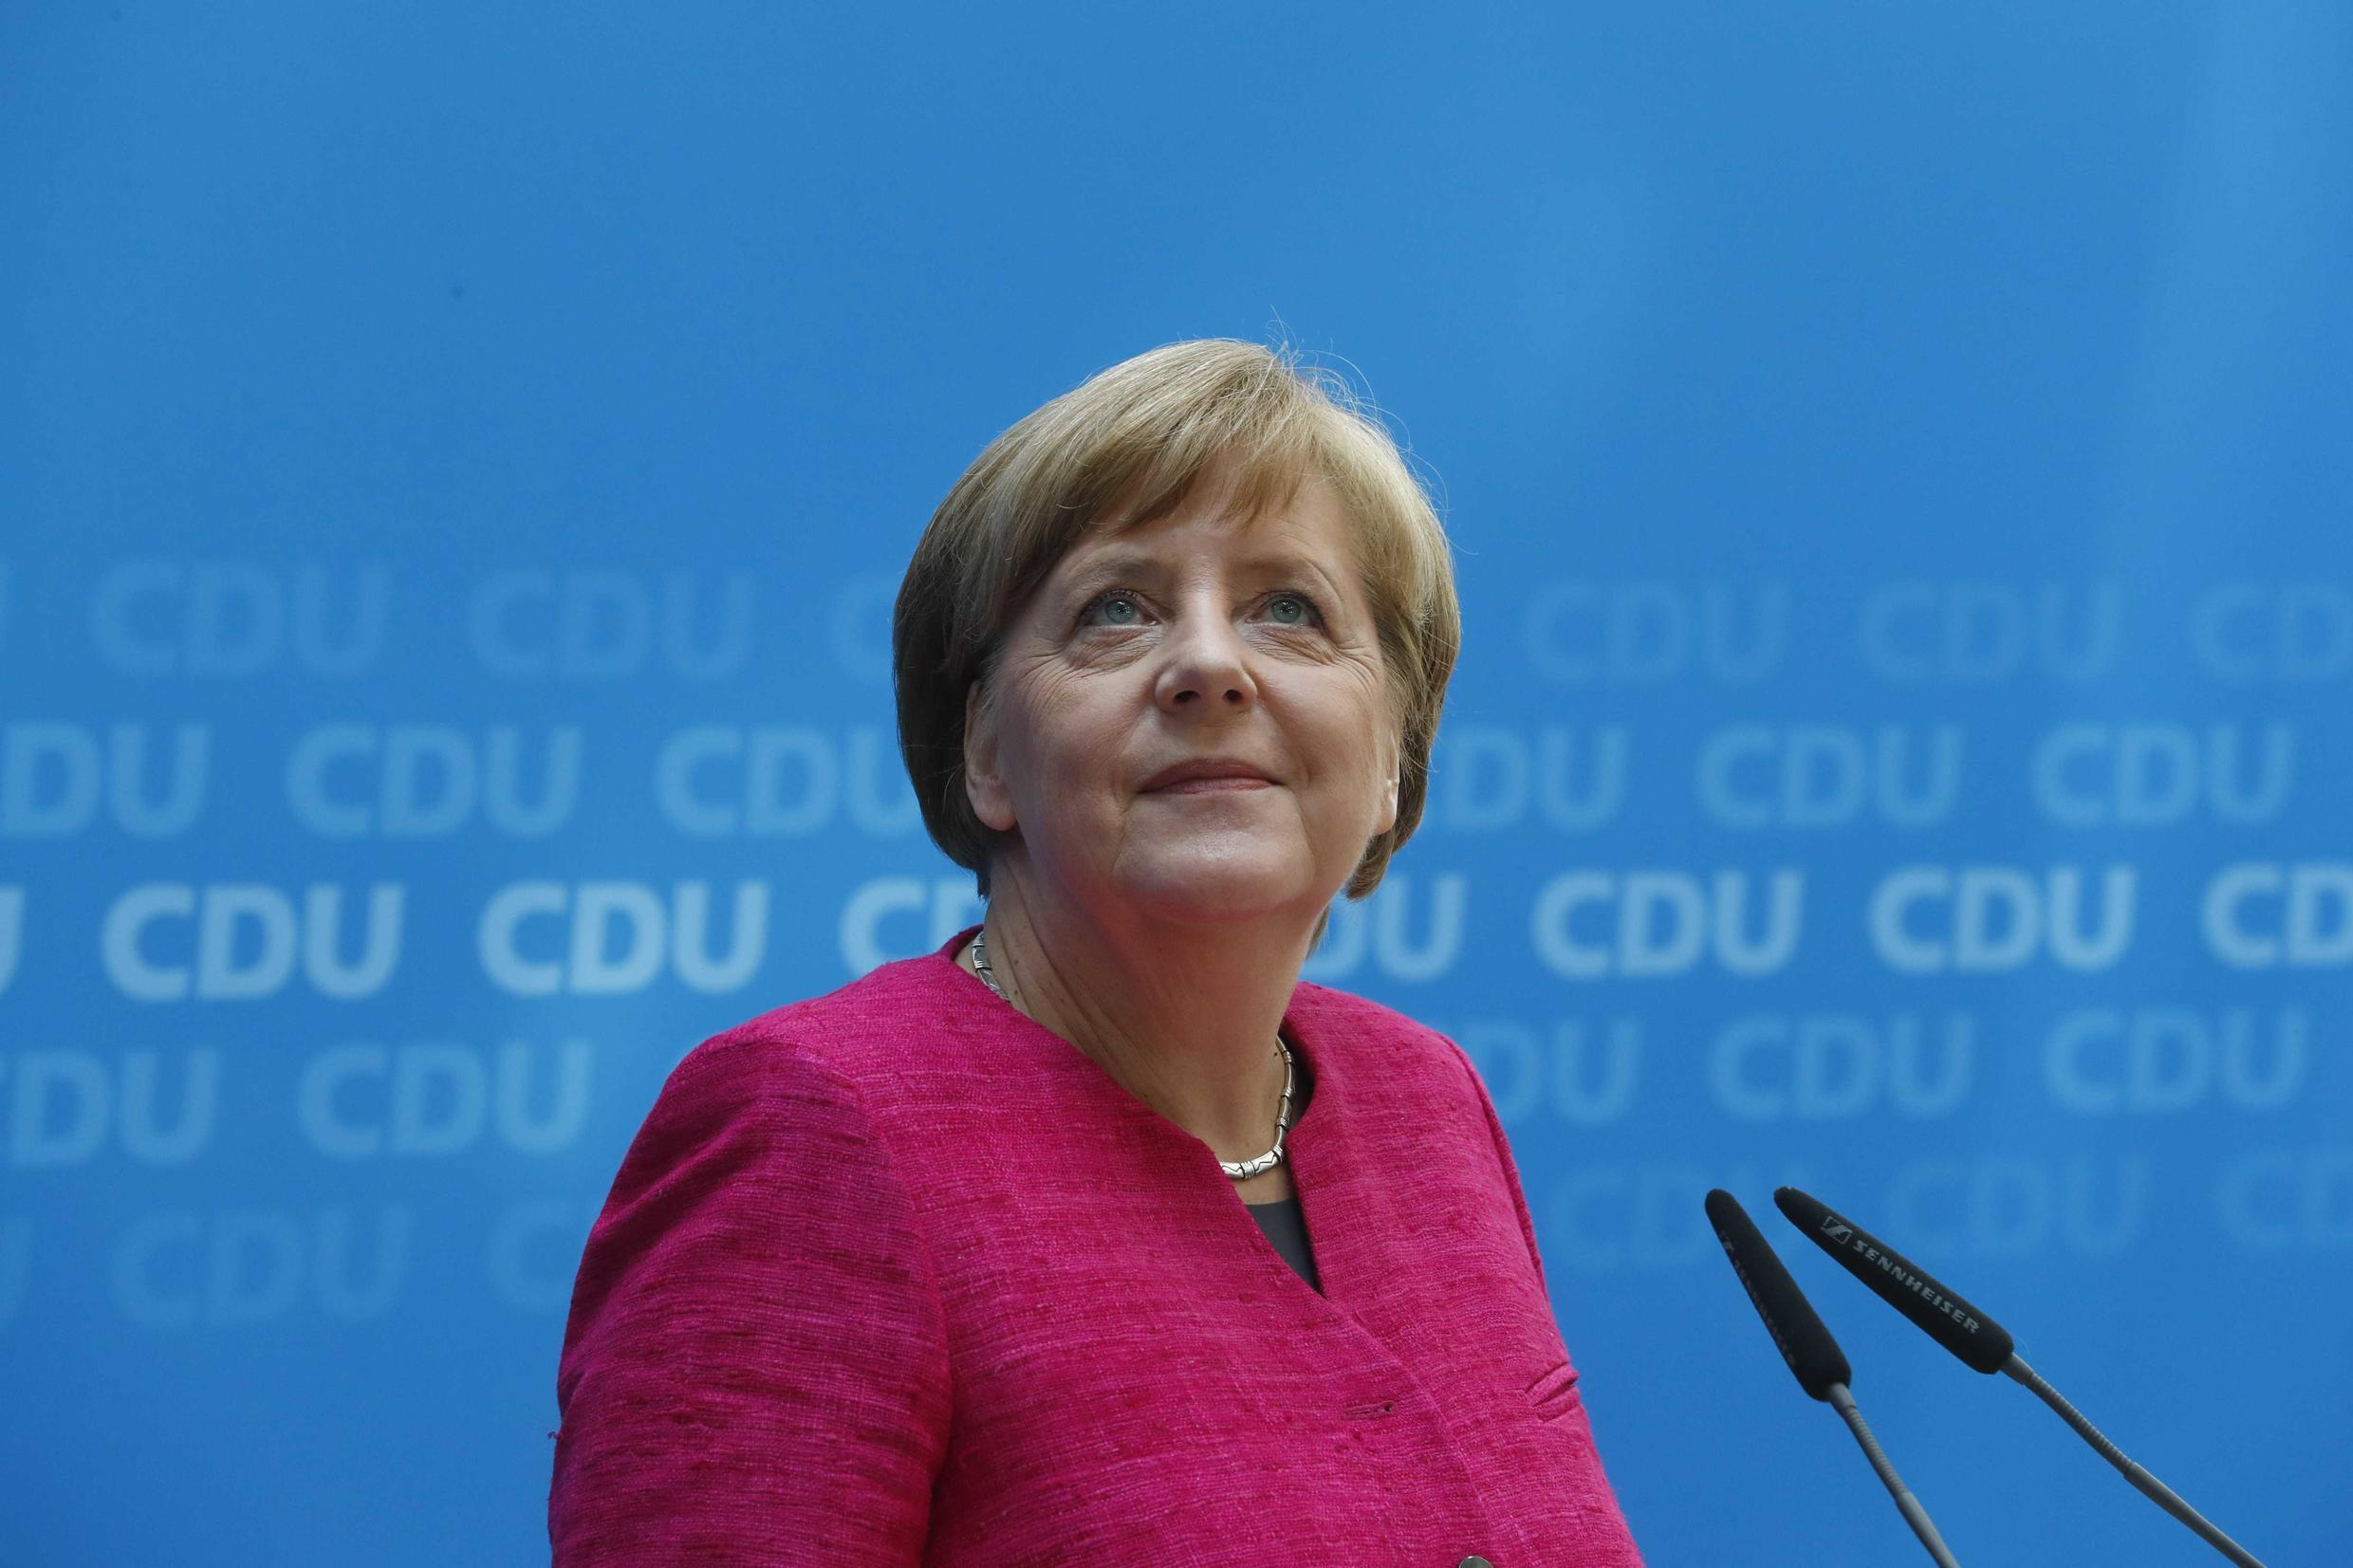 German Chancellor Angela Merkel during a press conference in Berlin, Germany, May 15, 2017.